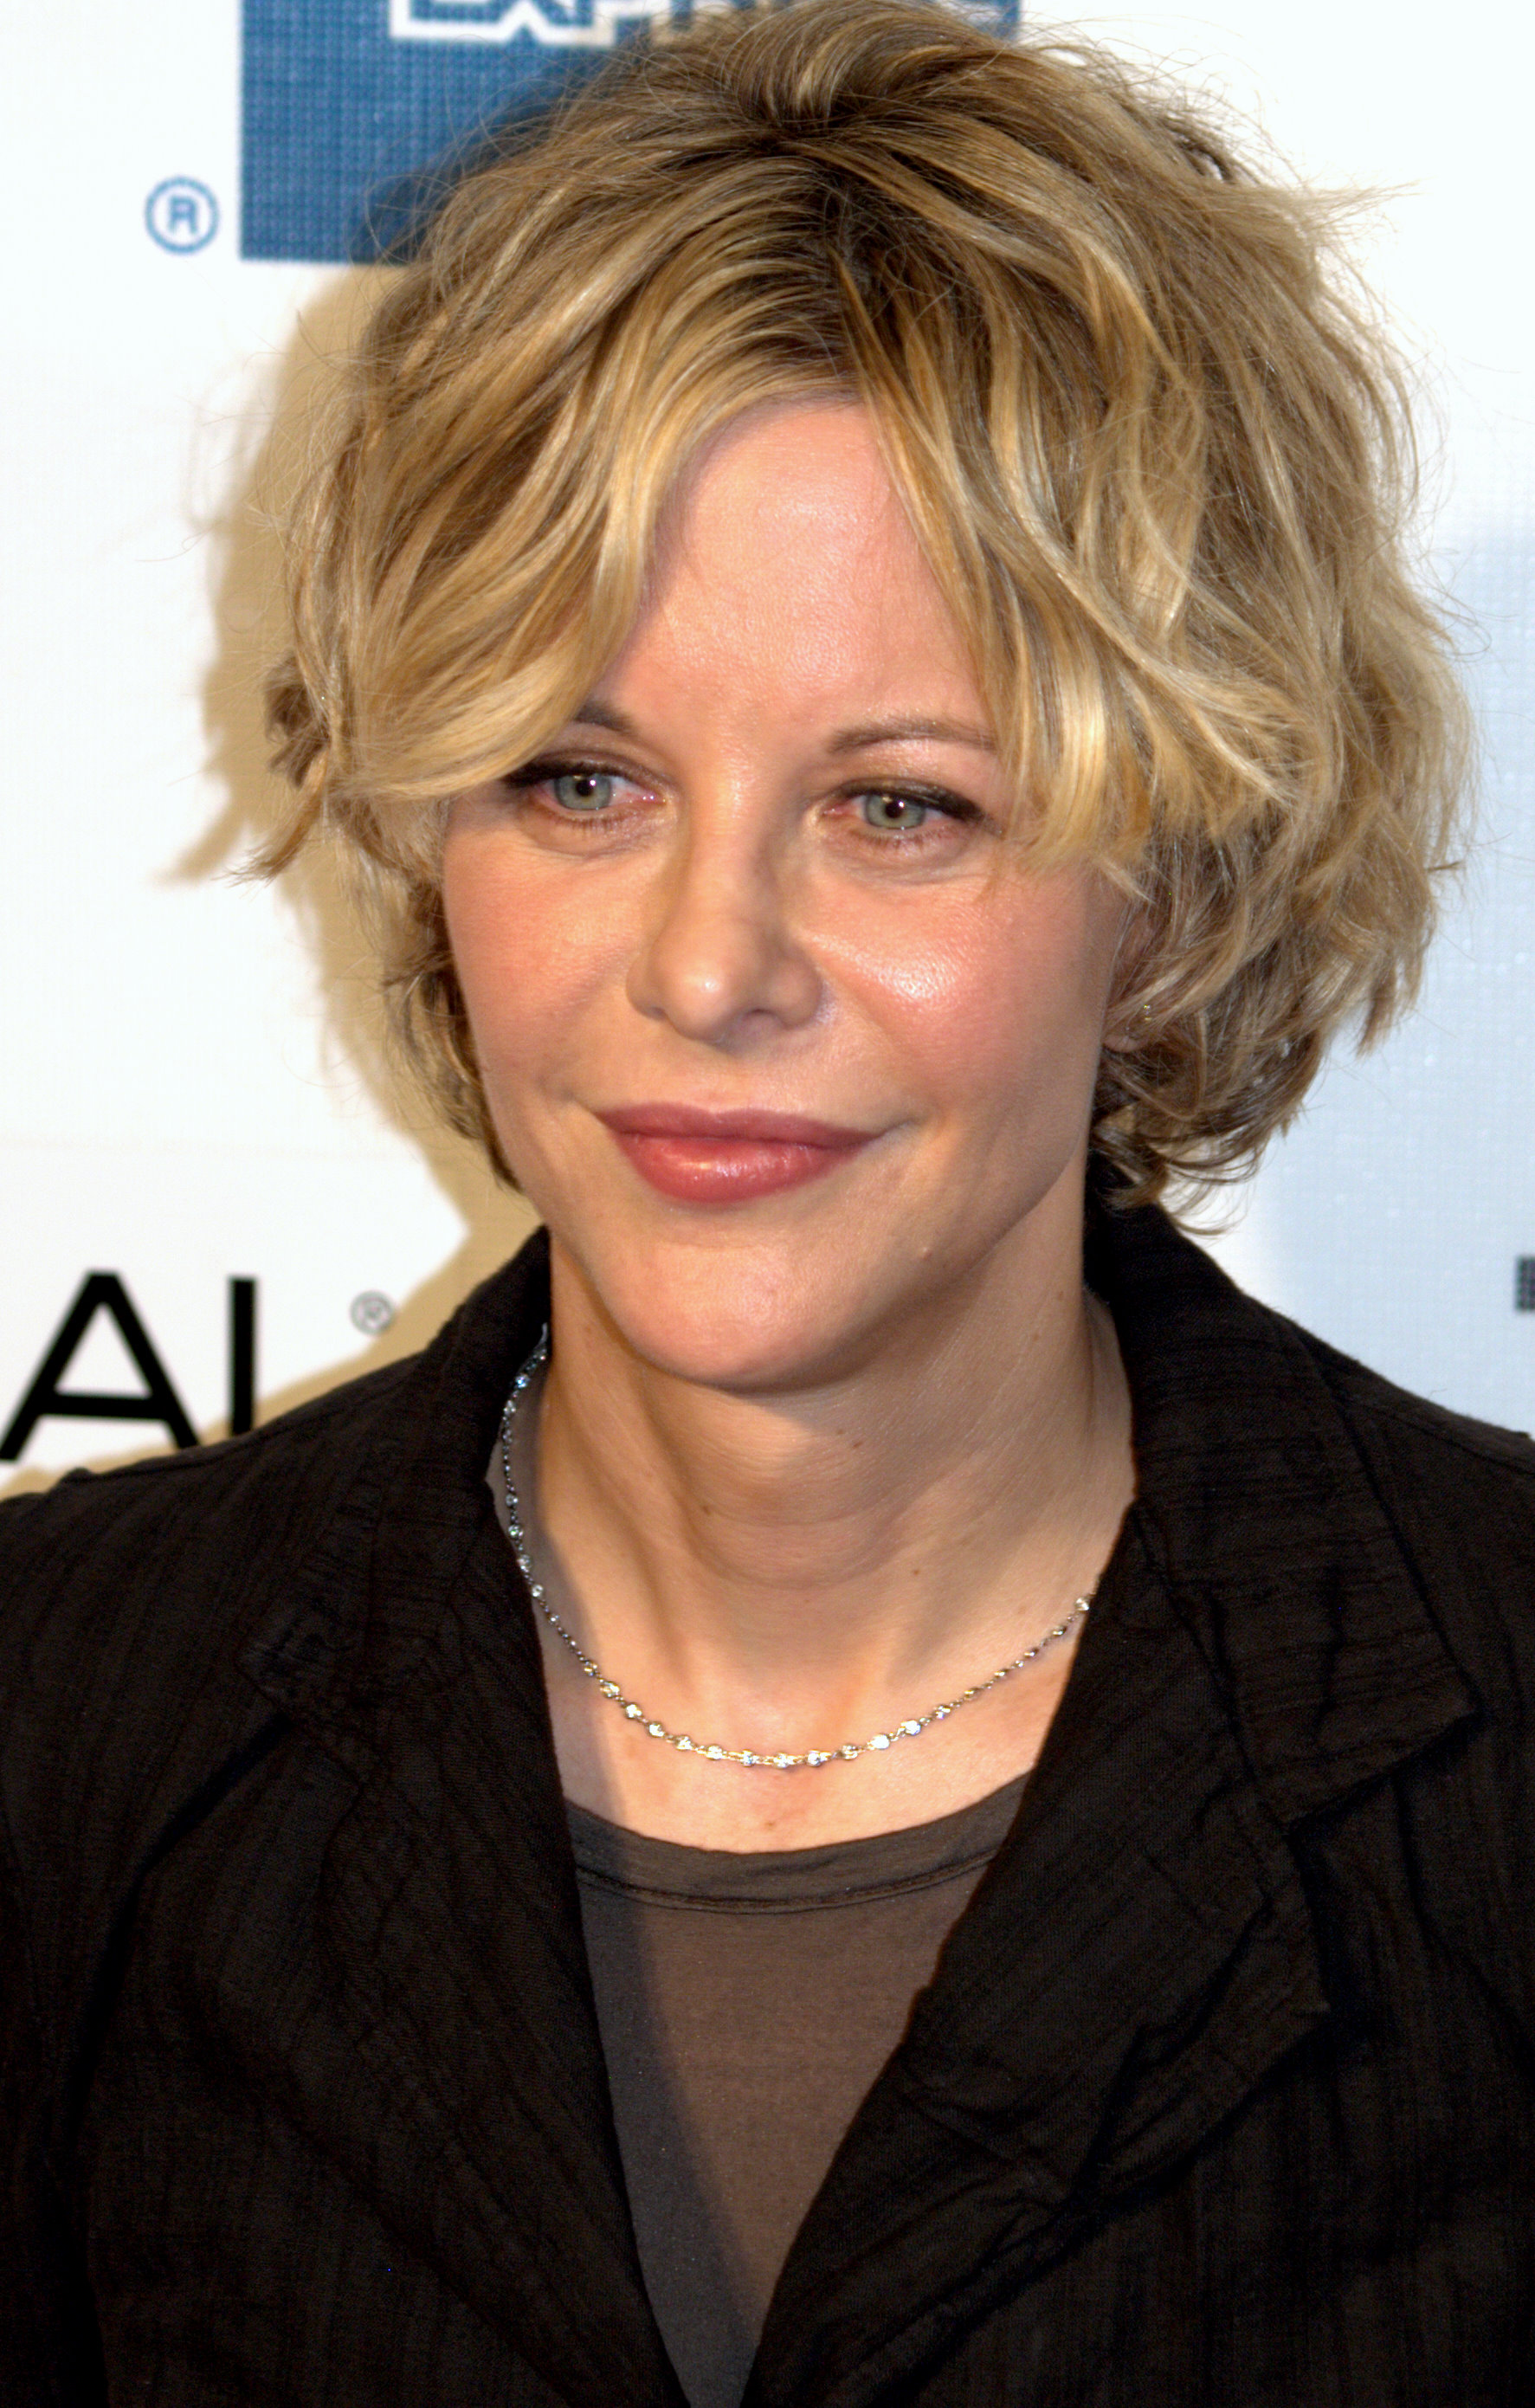 File:Meg Ryan 2009 portrait.jpg - Wikimedia Commons